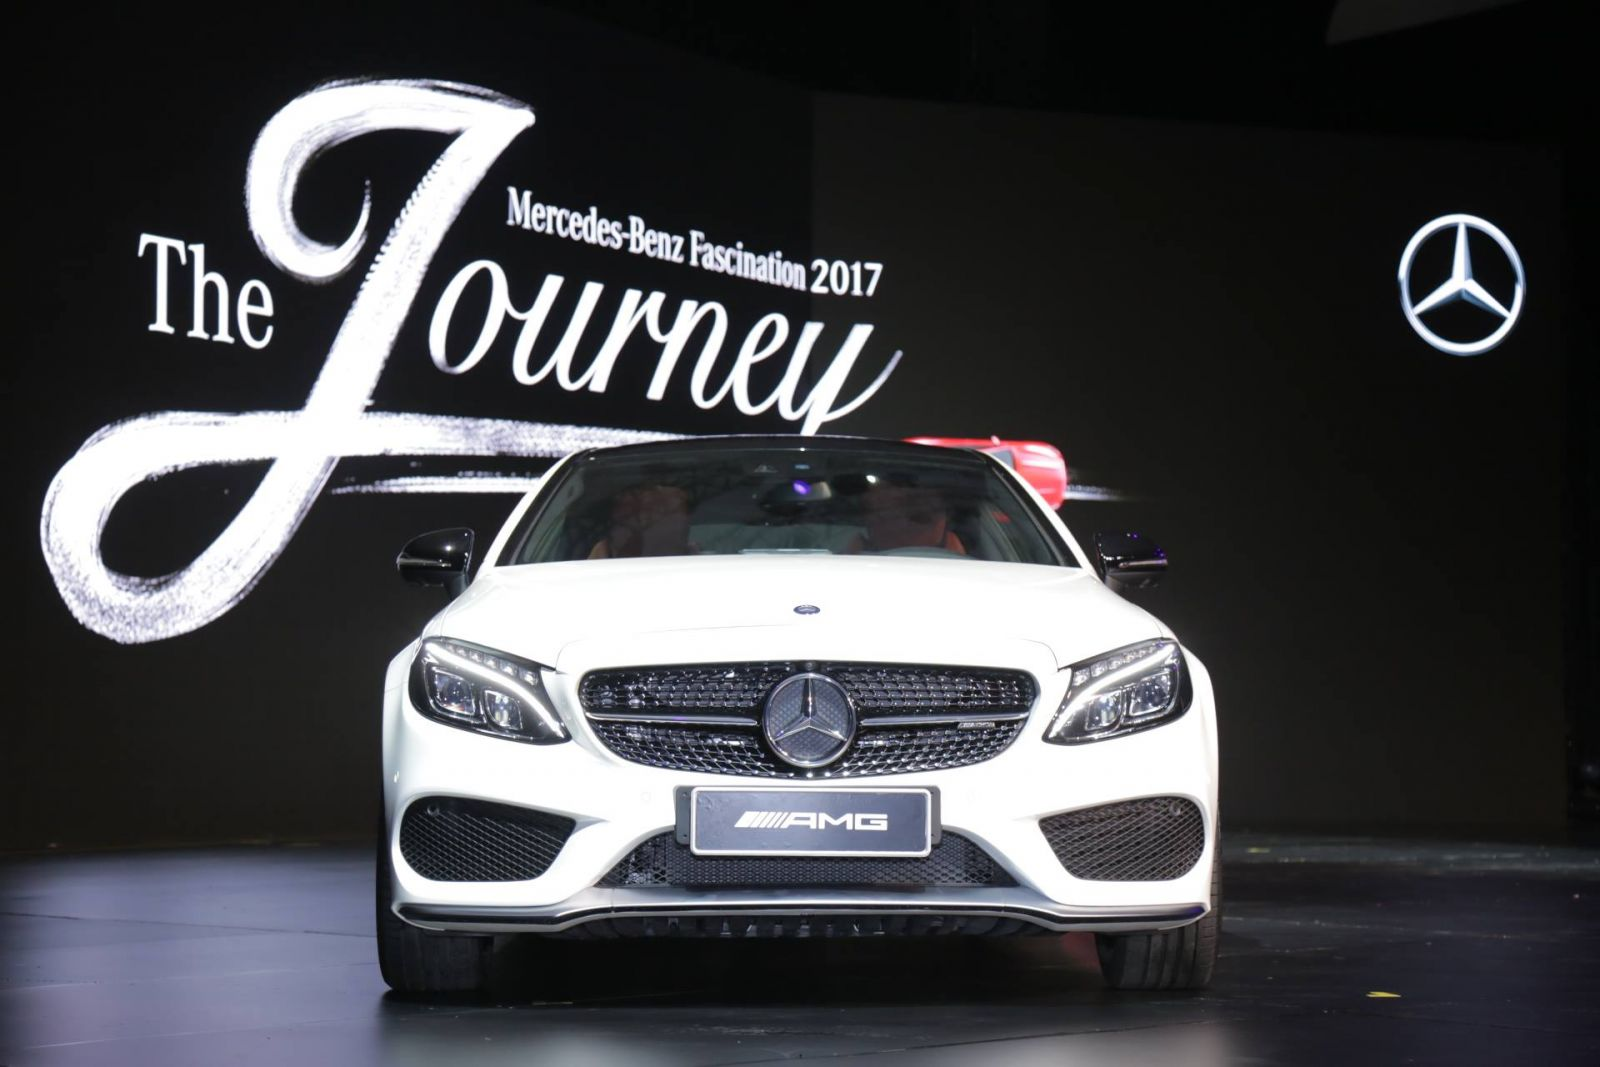 Mercedes-Benz Fascination 2017: The journey of satisfaction